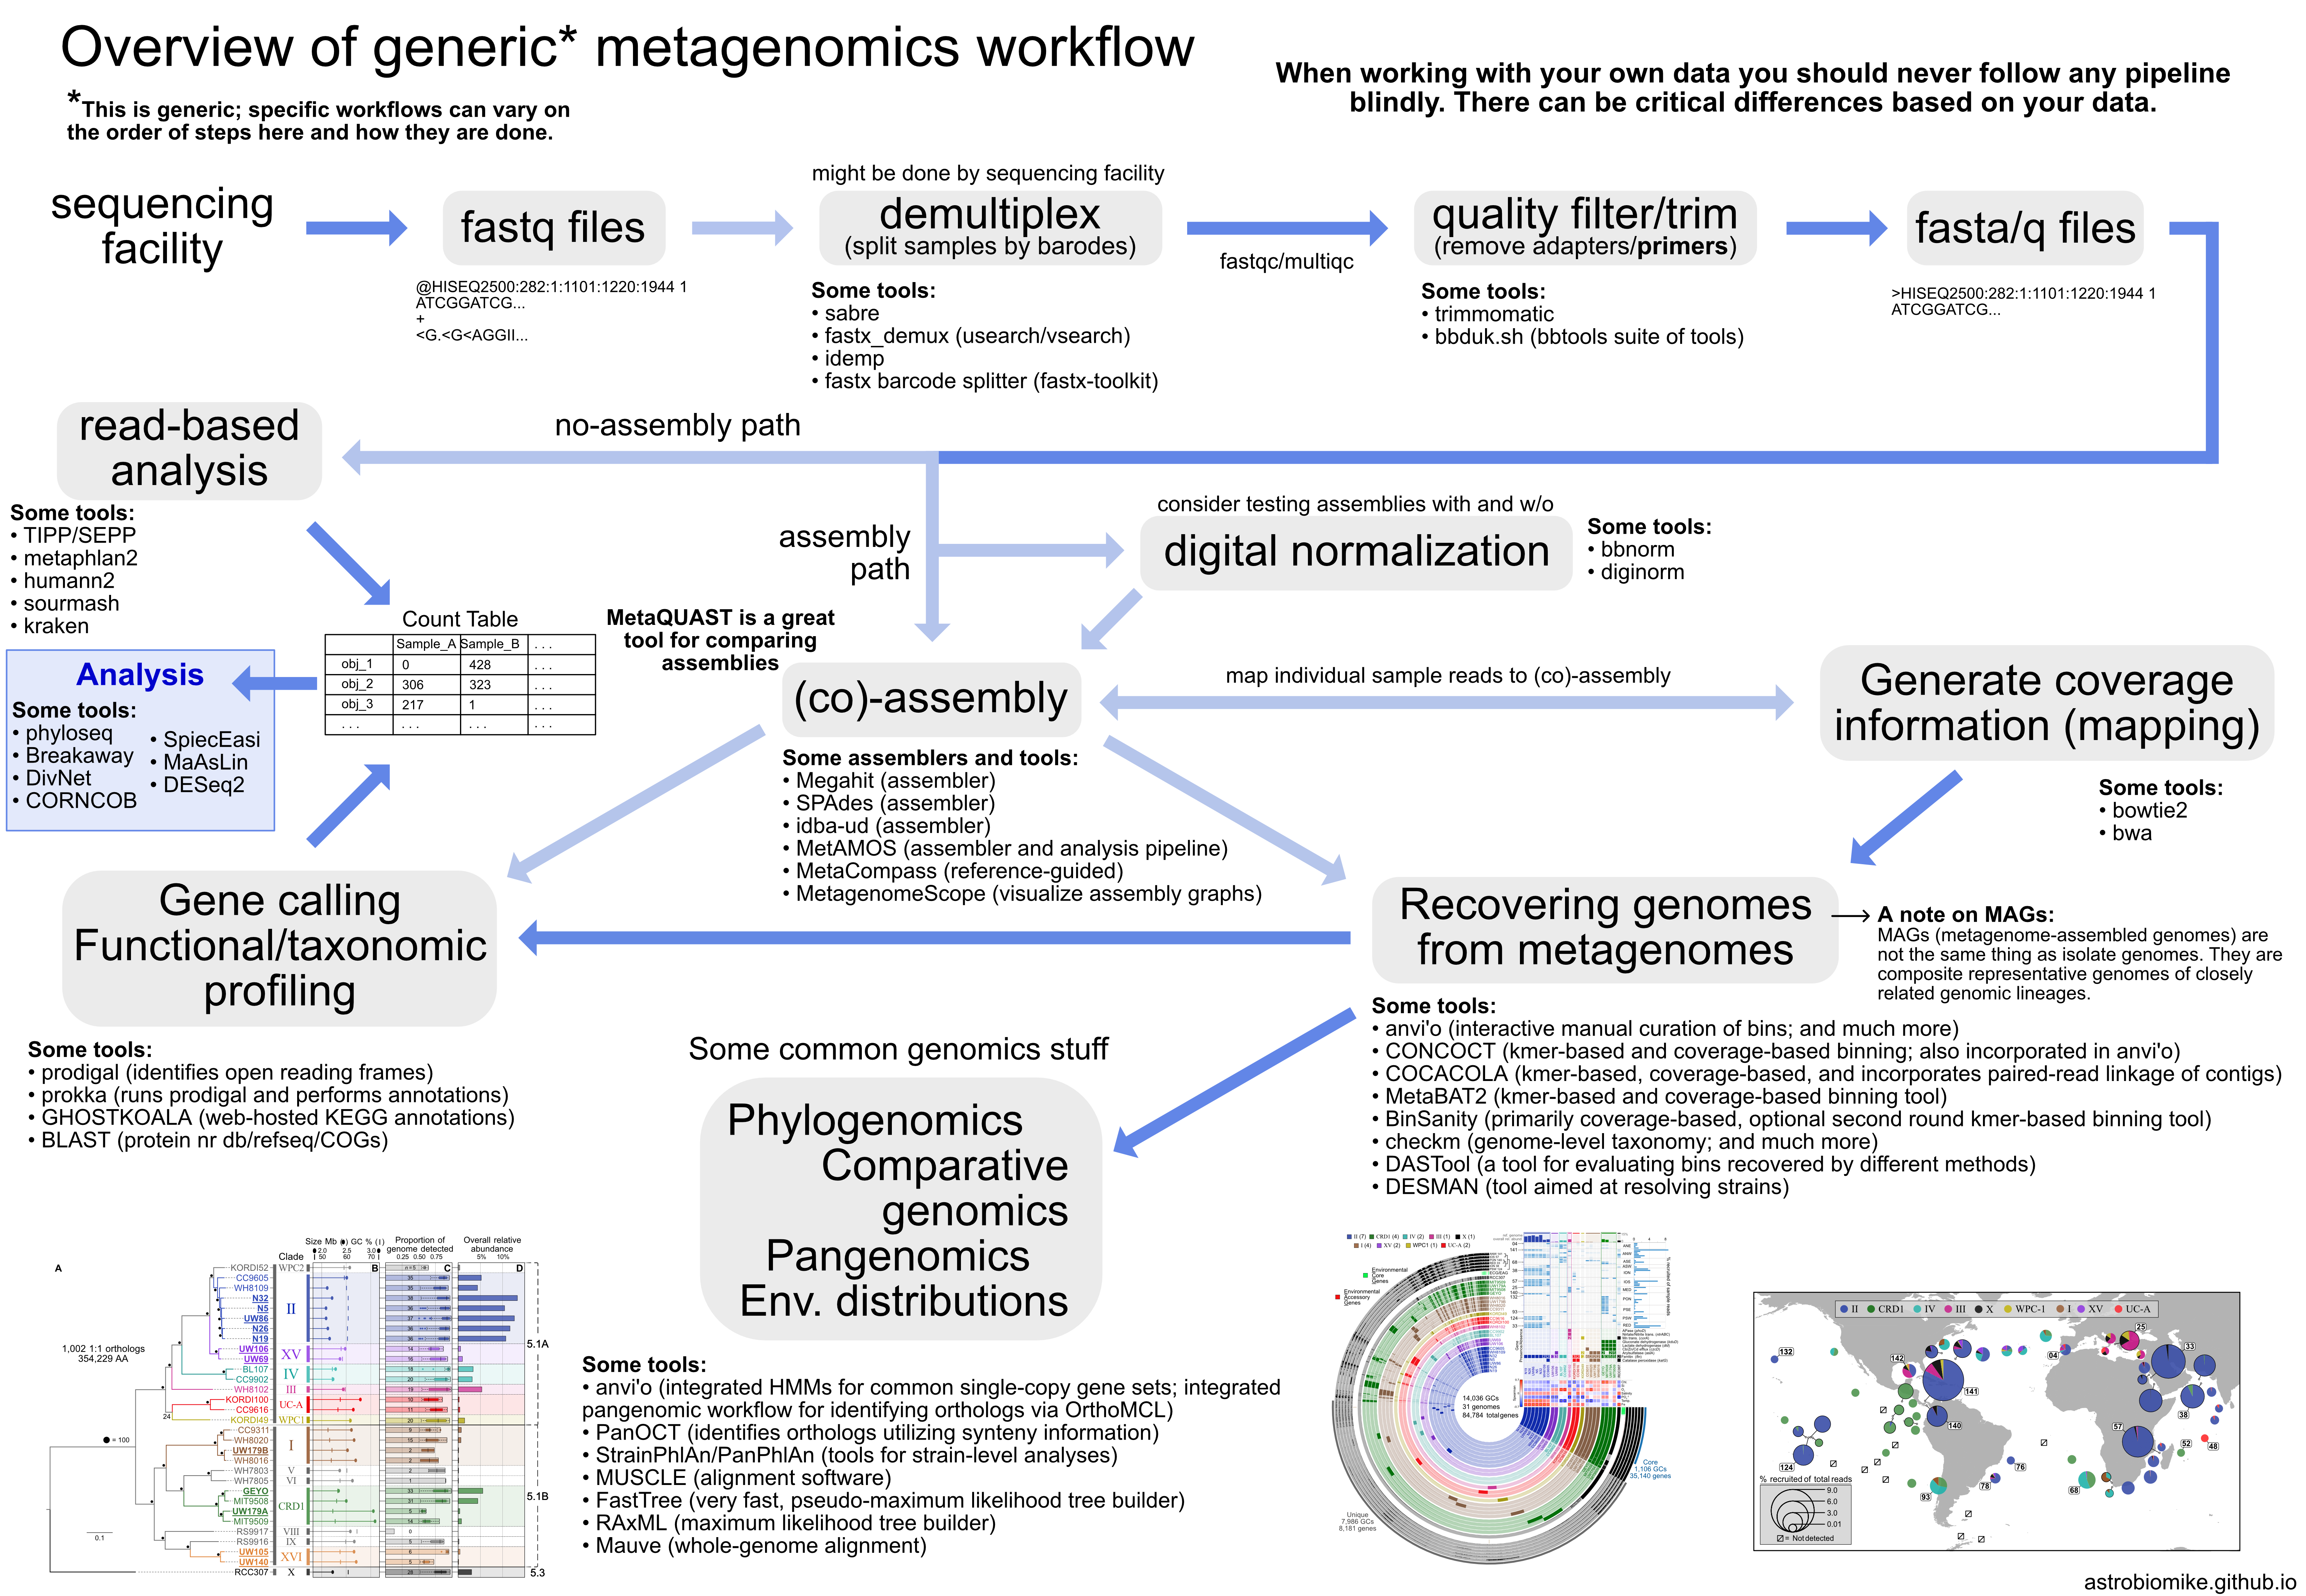 https://astrobiomike.github.io/images/metagenomics_overview.png